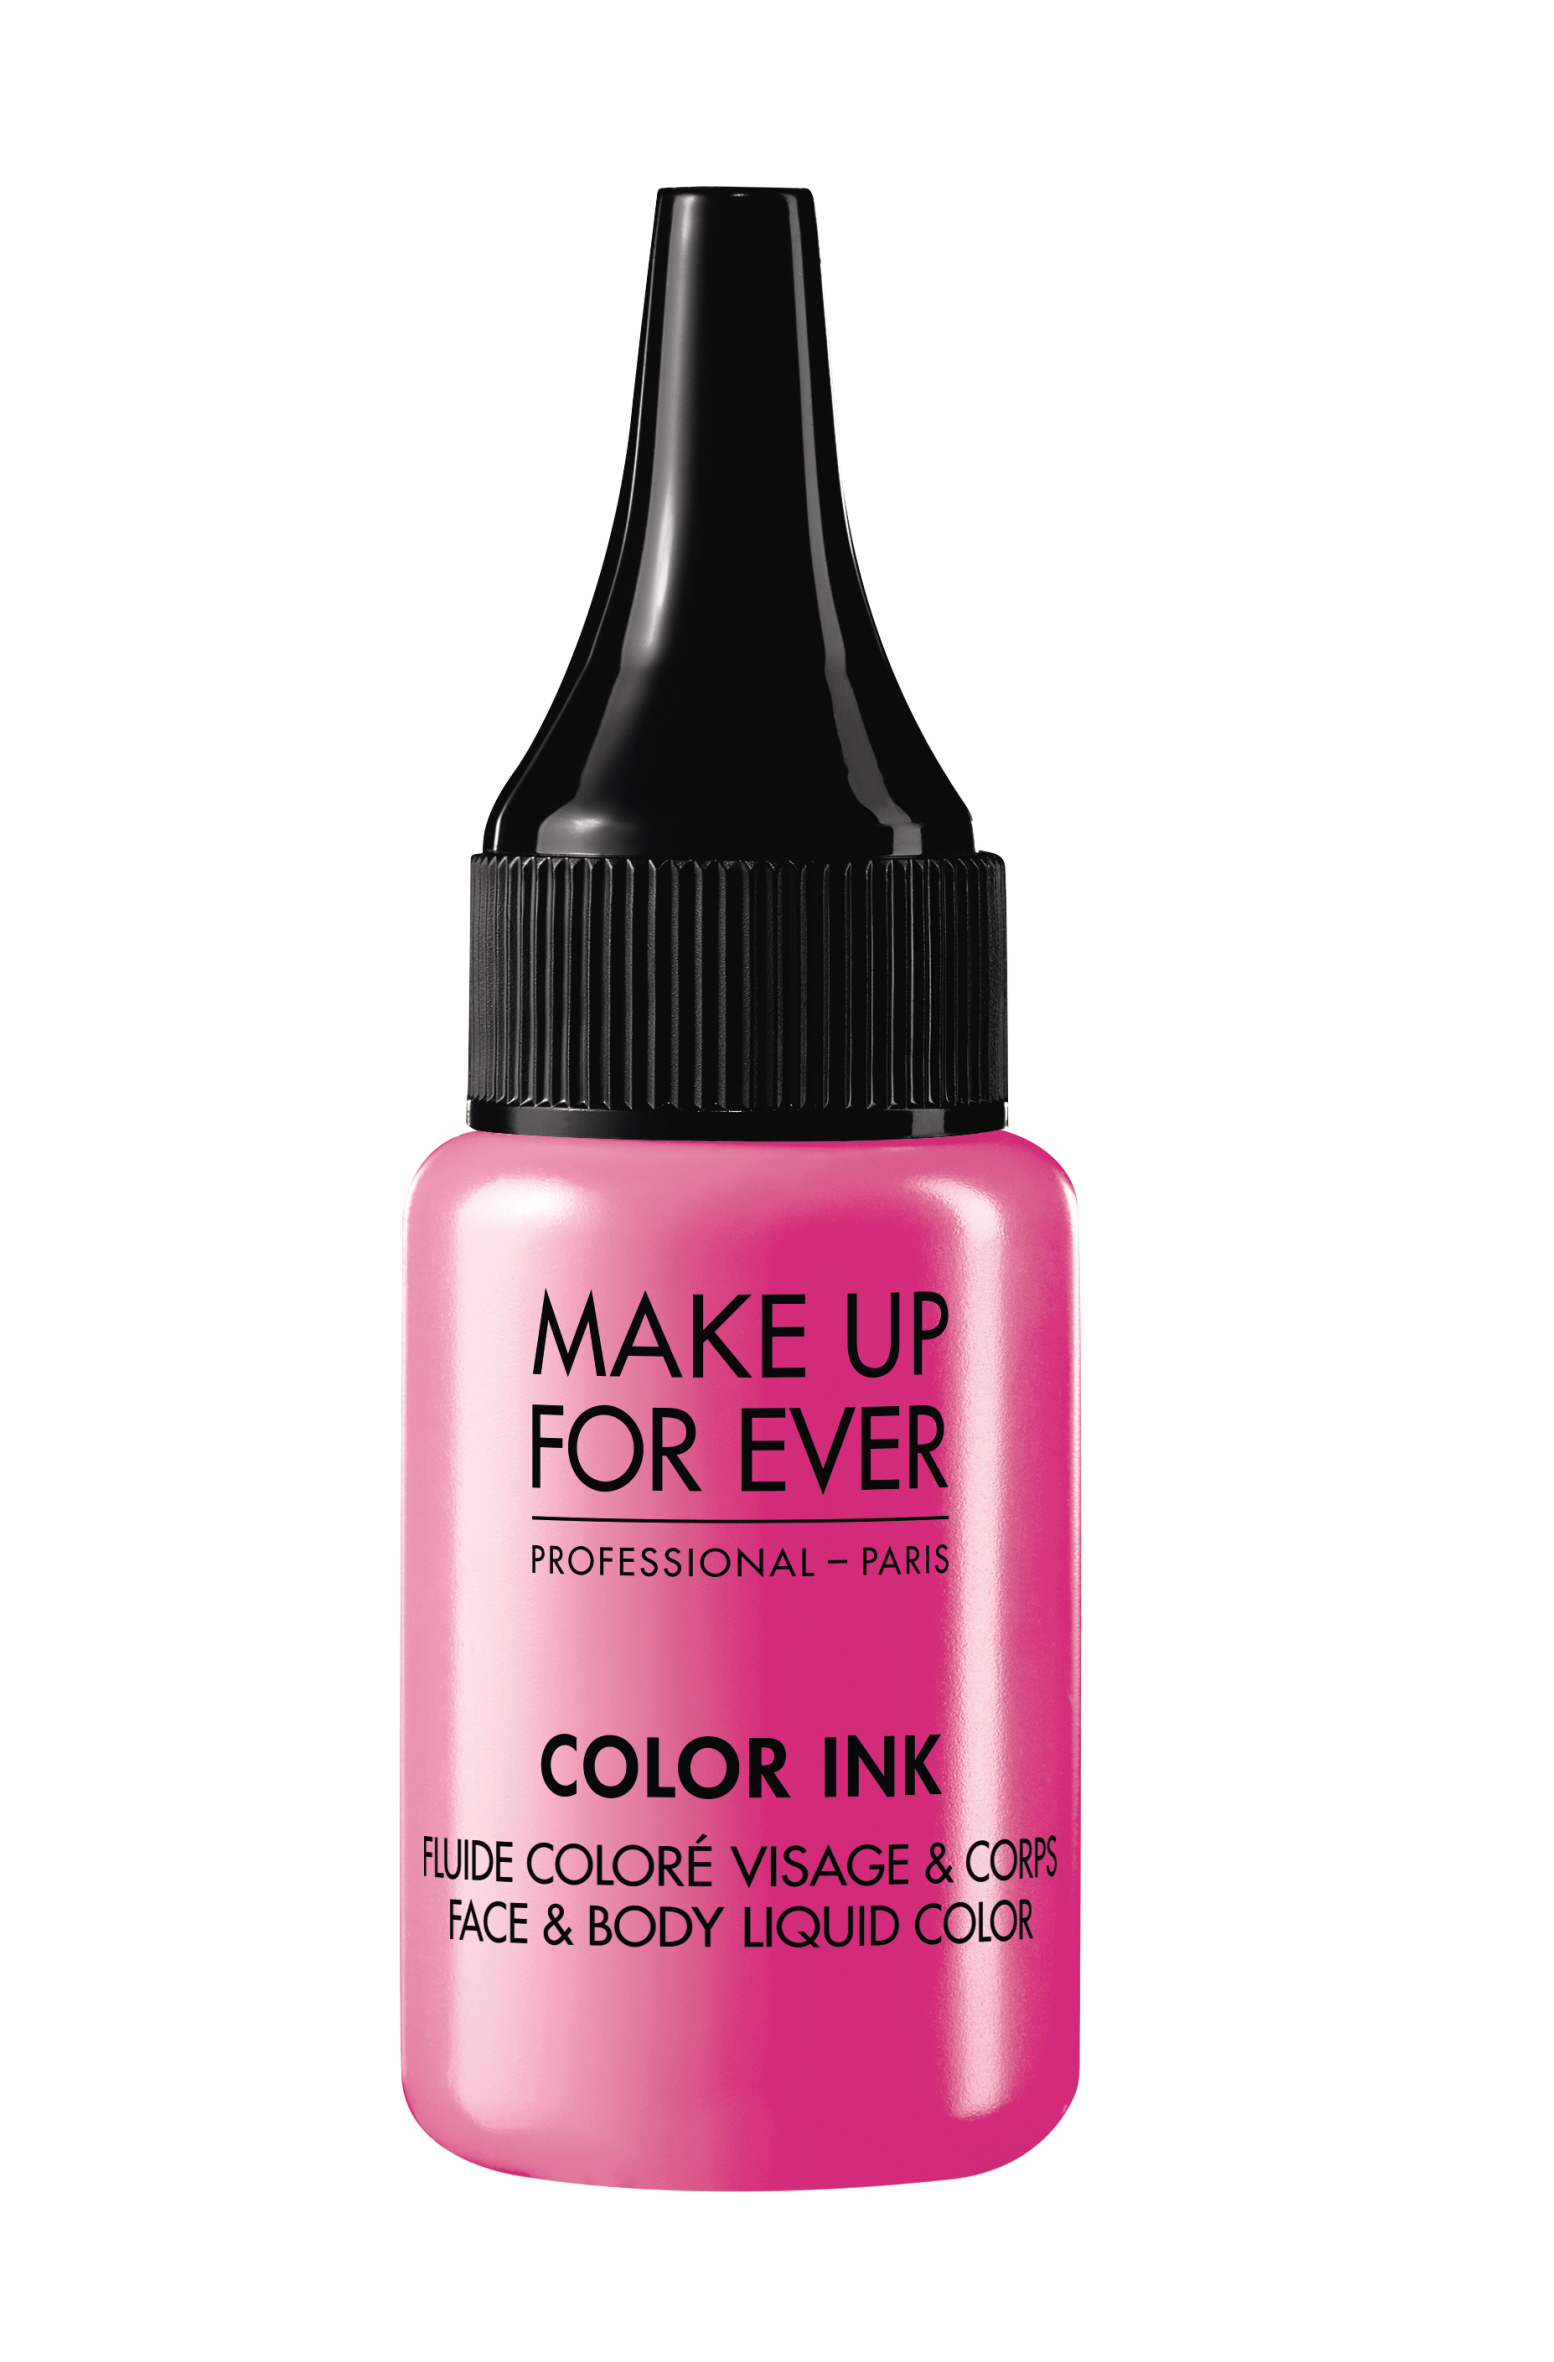 Цветная краска / Color Ink / Face & Body Liquid Color 15 мл (M804 Фуксия) Make Up For Ever